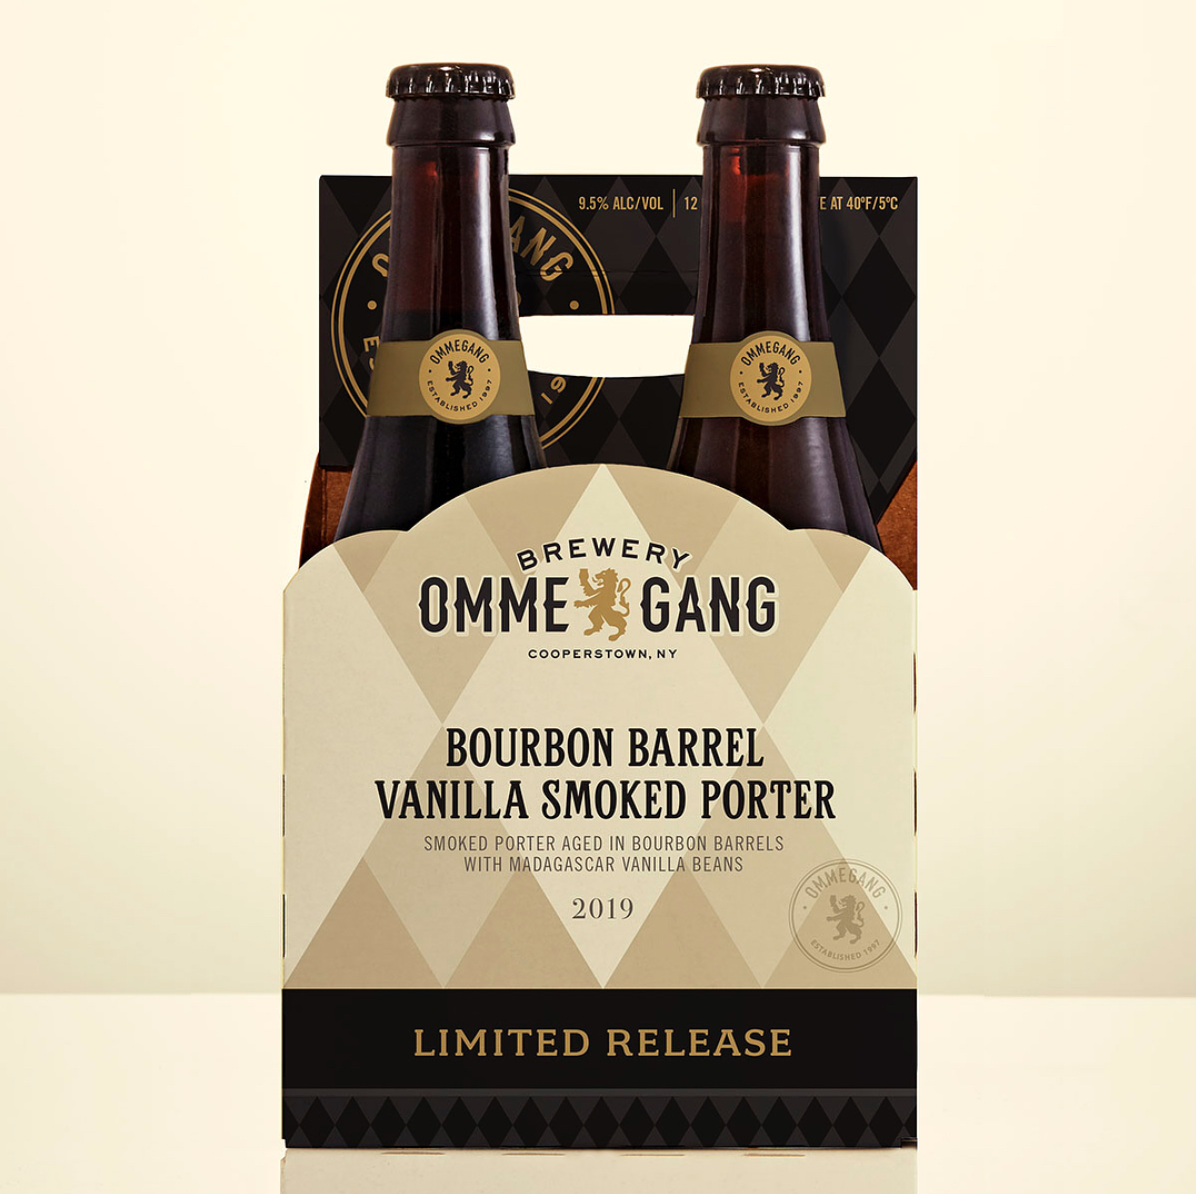 TheHopReview-Ommegang-NewPackaging-000.png